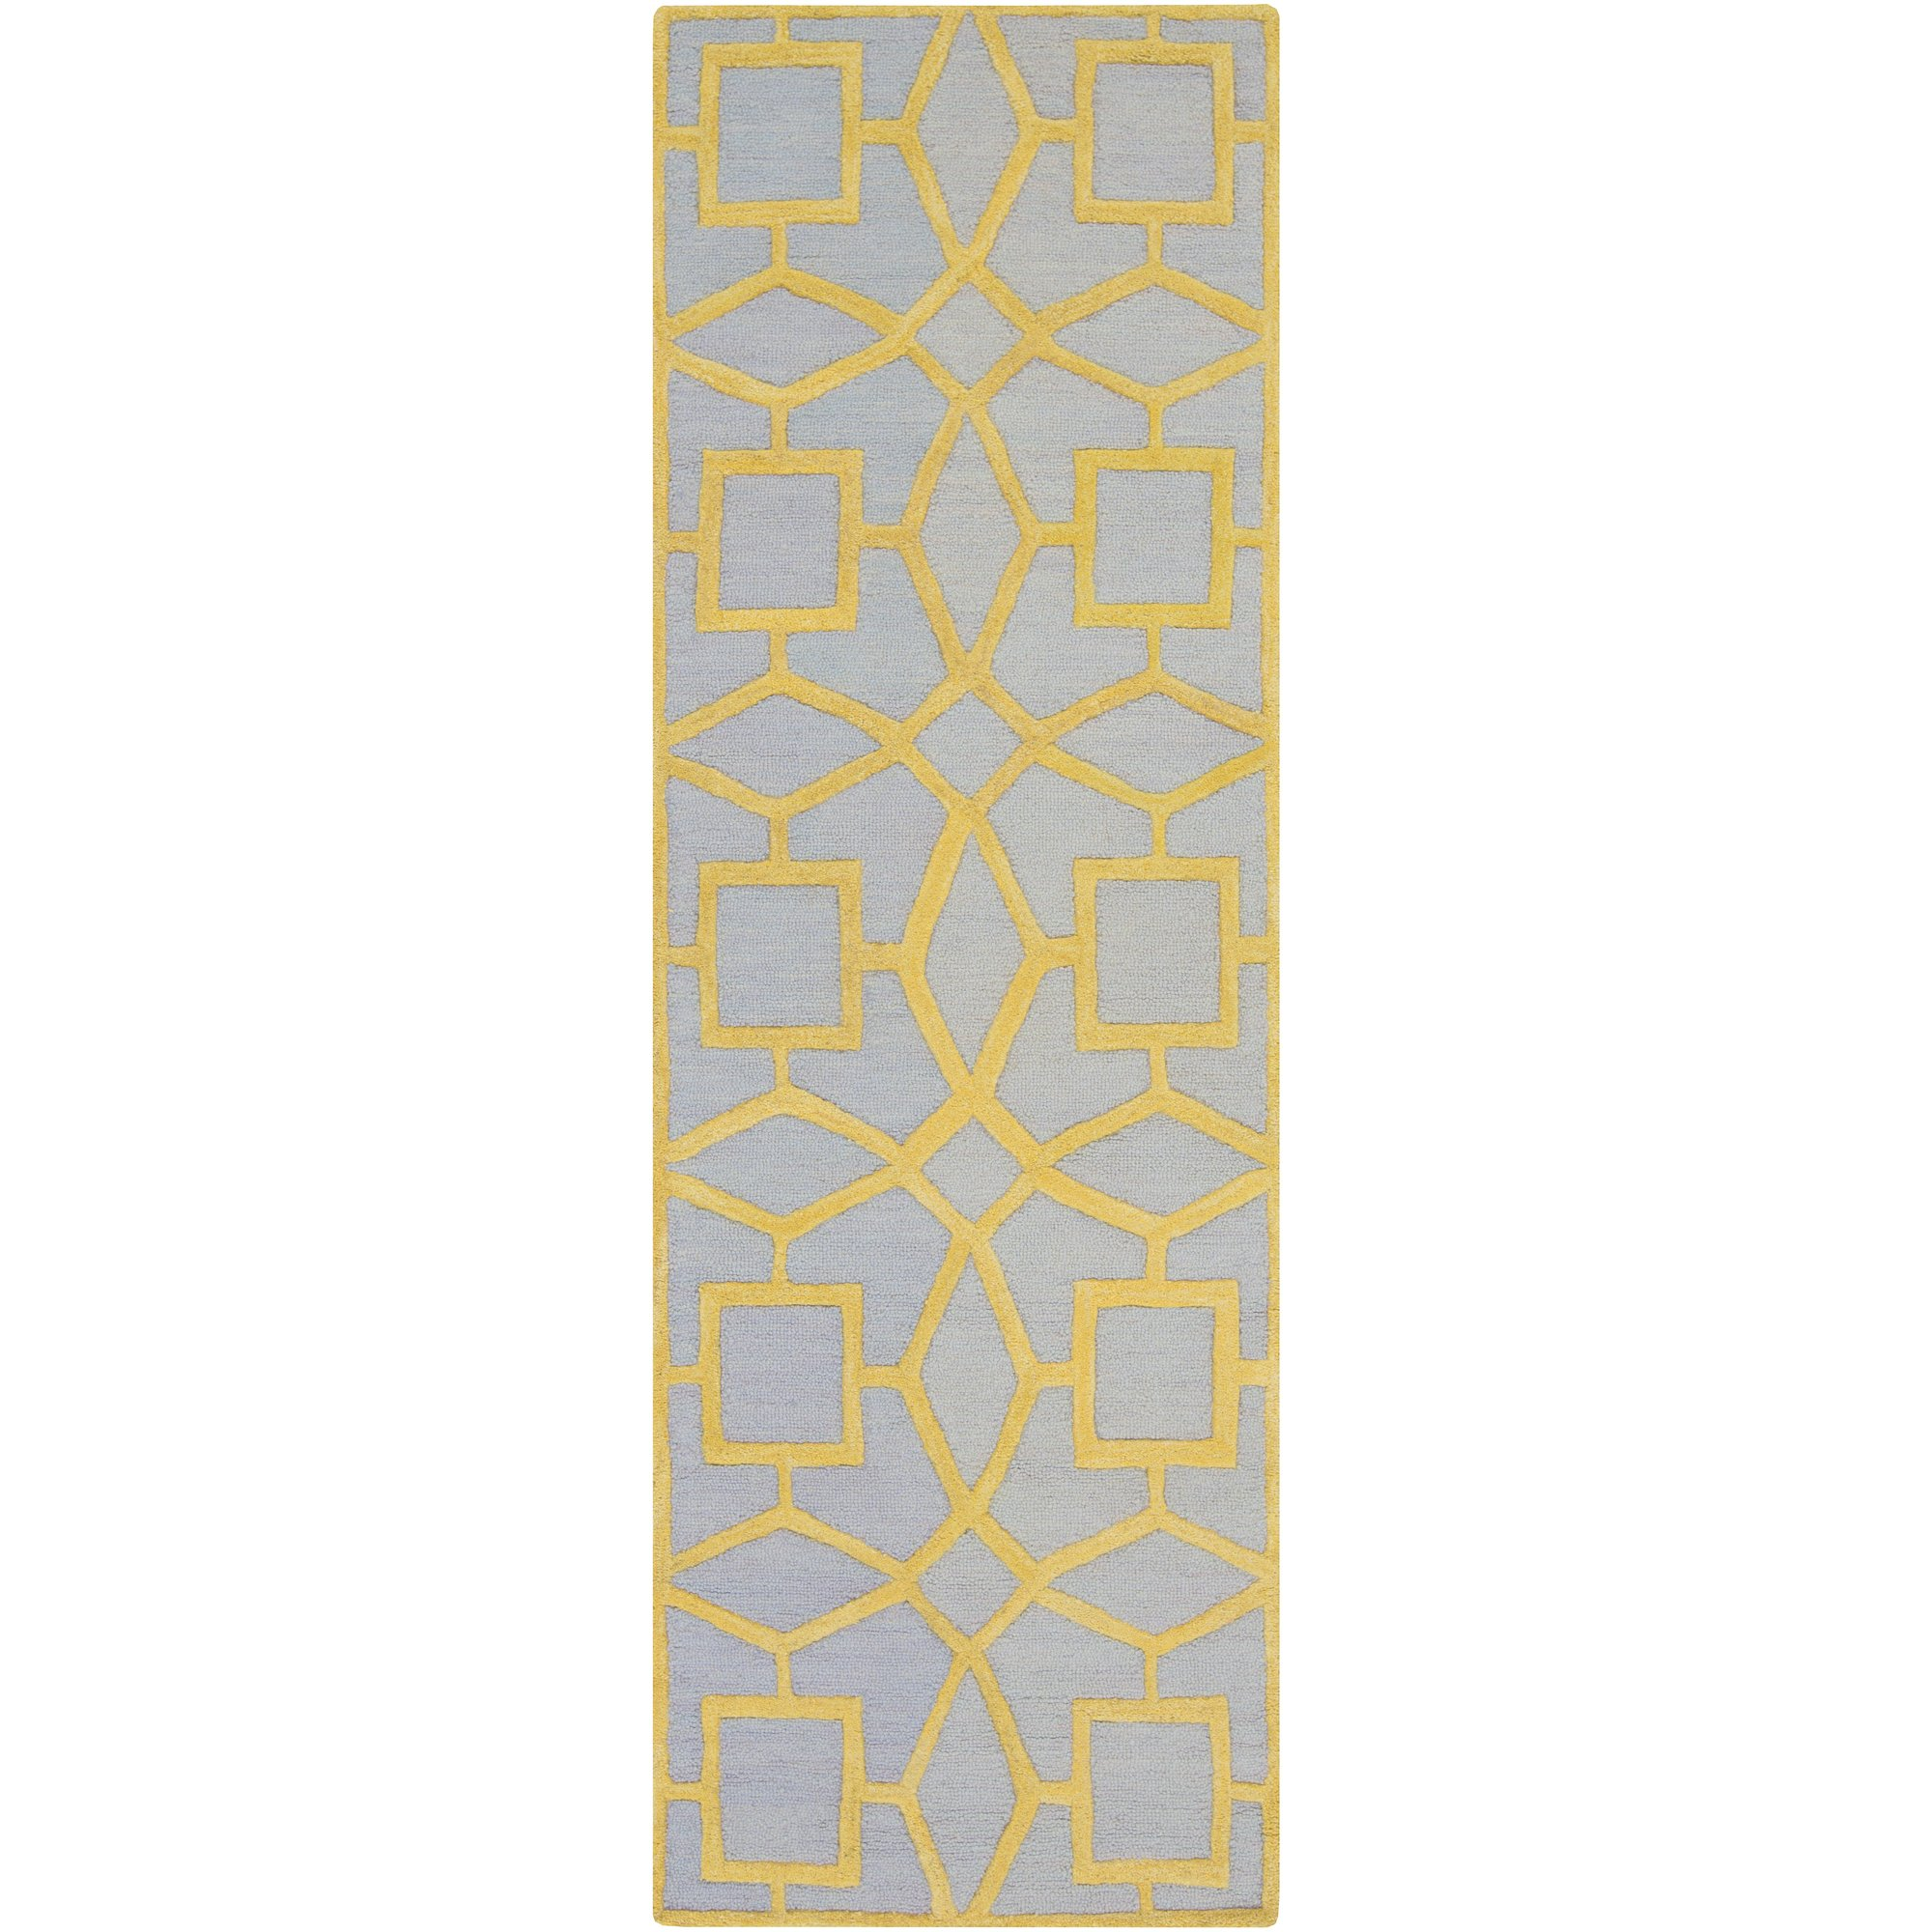 Surya Dream DST-1173 Hand Tufted 100-Percent New Zealand Wool Geometric Runner Rug, 2-Feet 6-Inch by 8-Feet